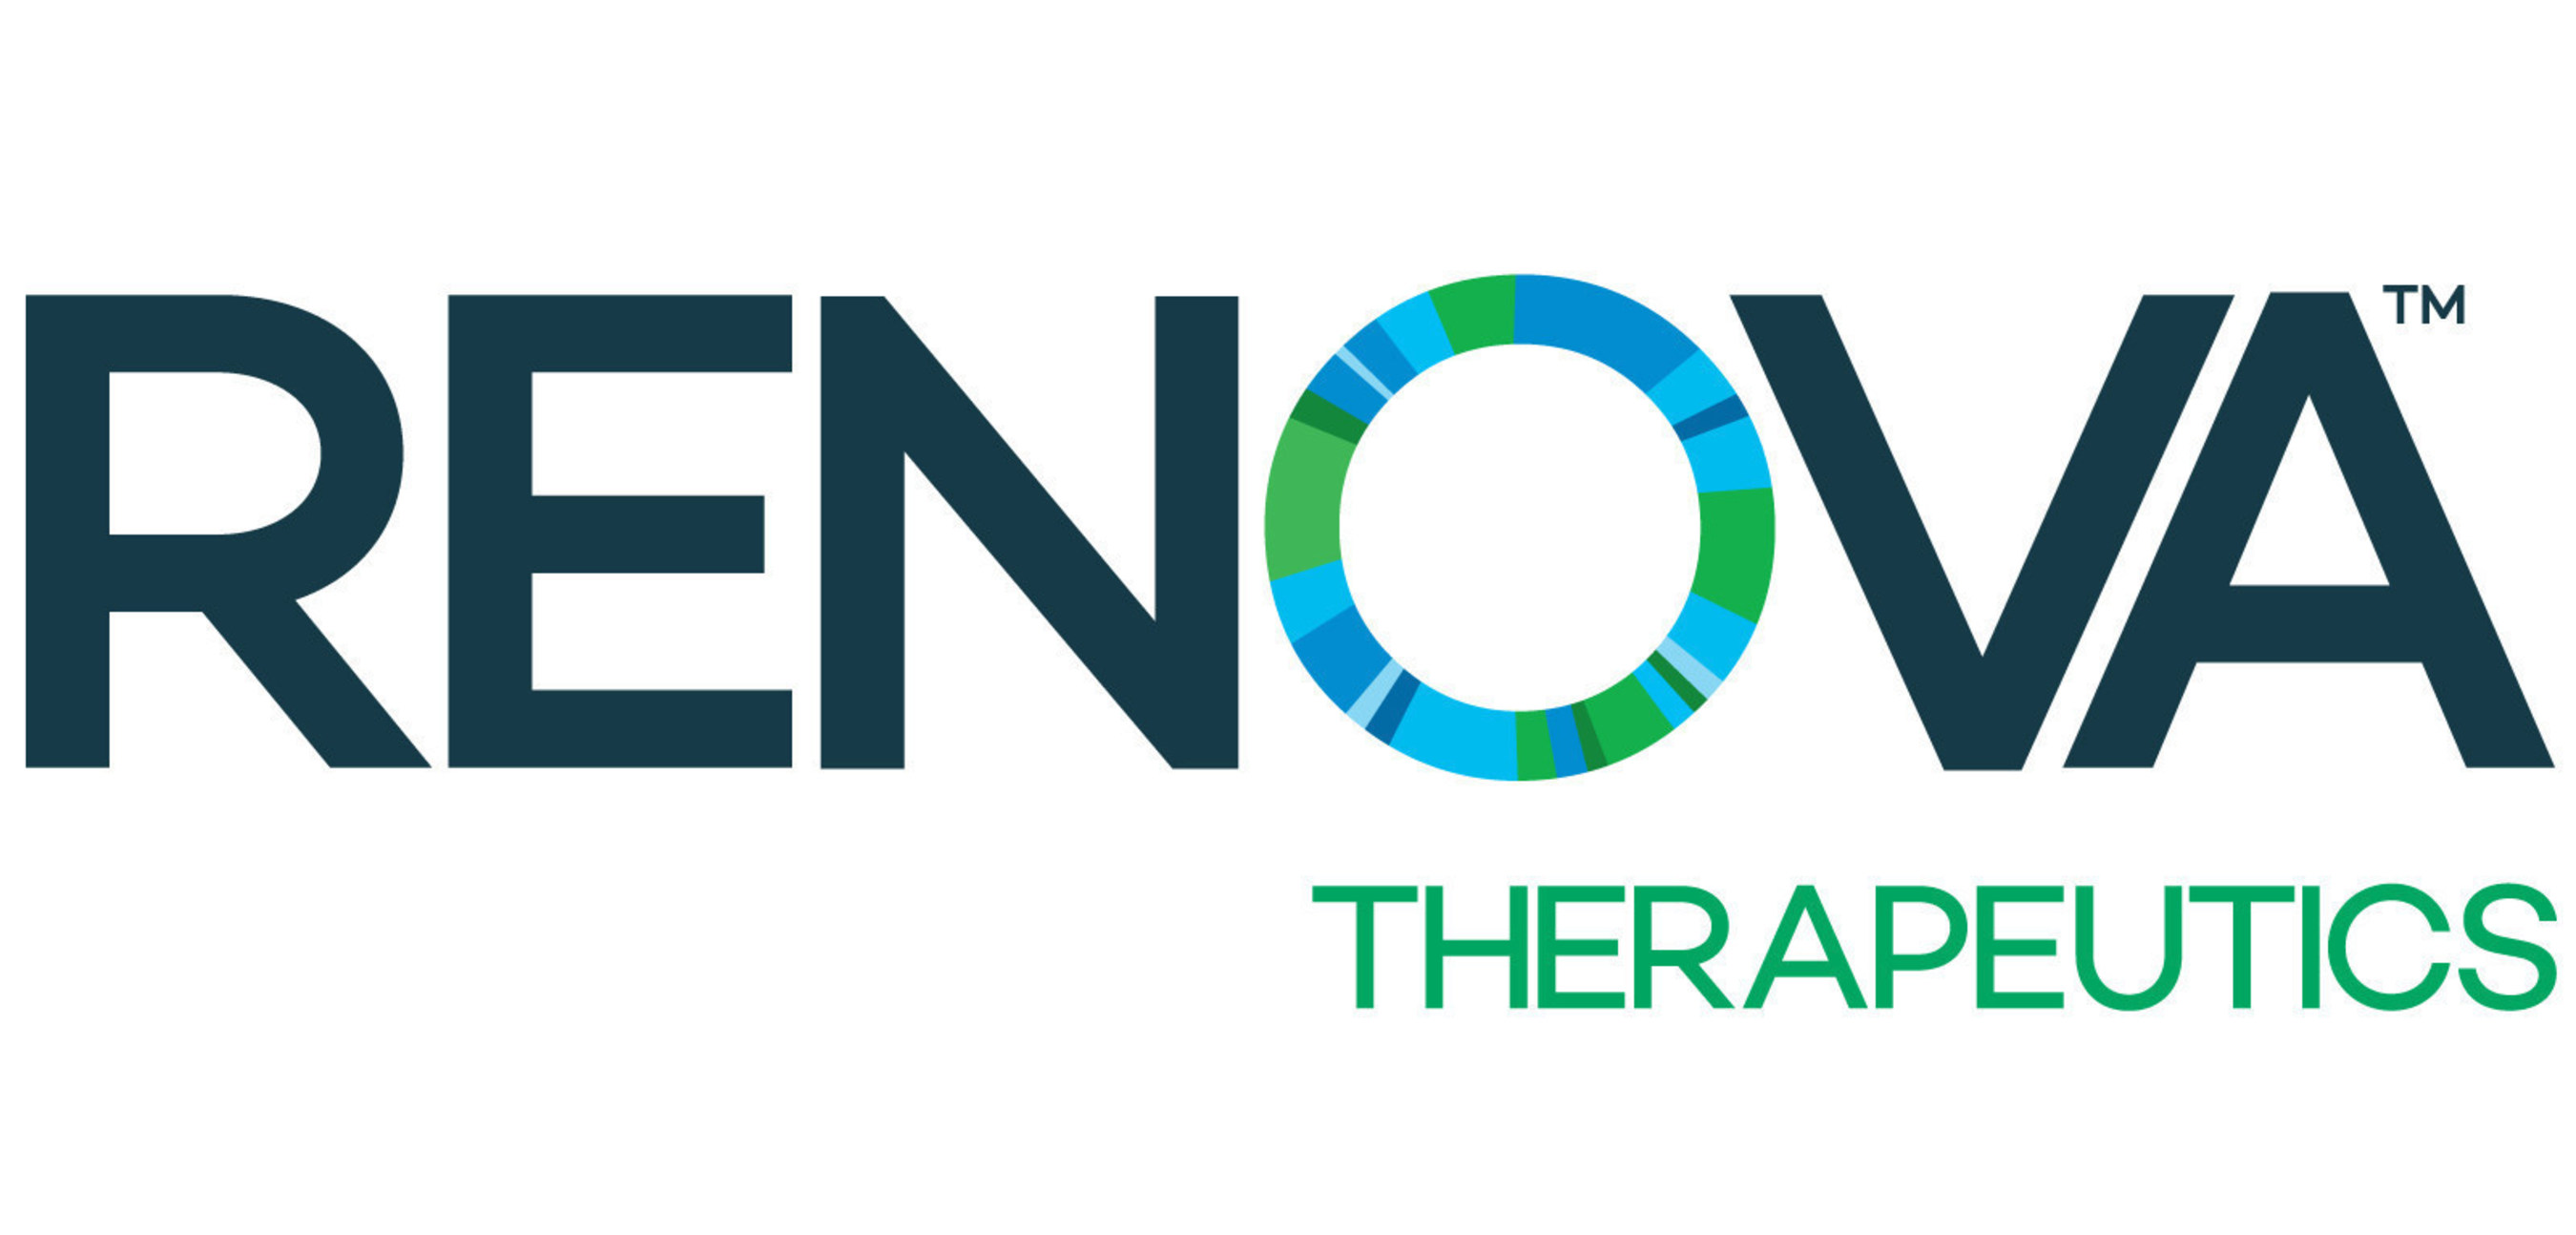 Renova Therapeutics, a biopharmaceutical company developing gene therapy treatments for congestive heart failure and other chronic diseases, has obtained an exclusive worldwide license to several patents from the nonprofit Research Development Foundation (RDF). This group of patents adds to Renova Therapeutics' extensive intellectual property portfolio in the cardiovascular and metabolic disease space, paving the way for its paracrine gene therapy product pipeline.